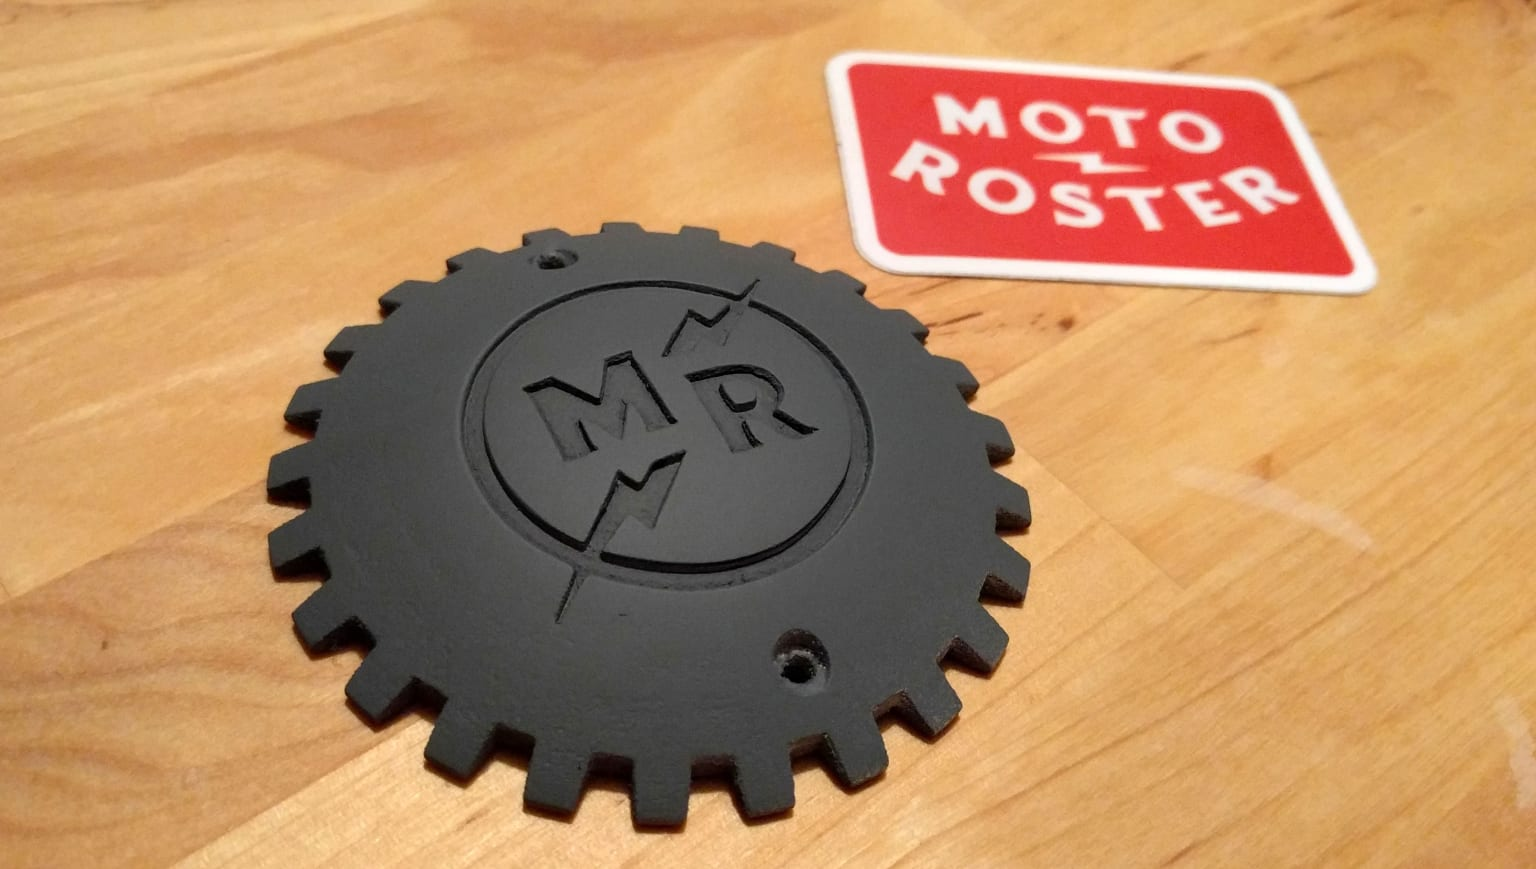 Moto Roster Connected Badges